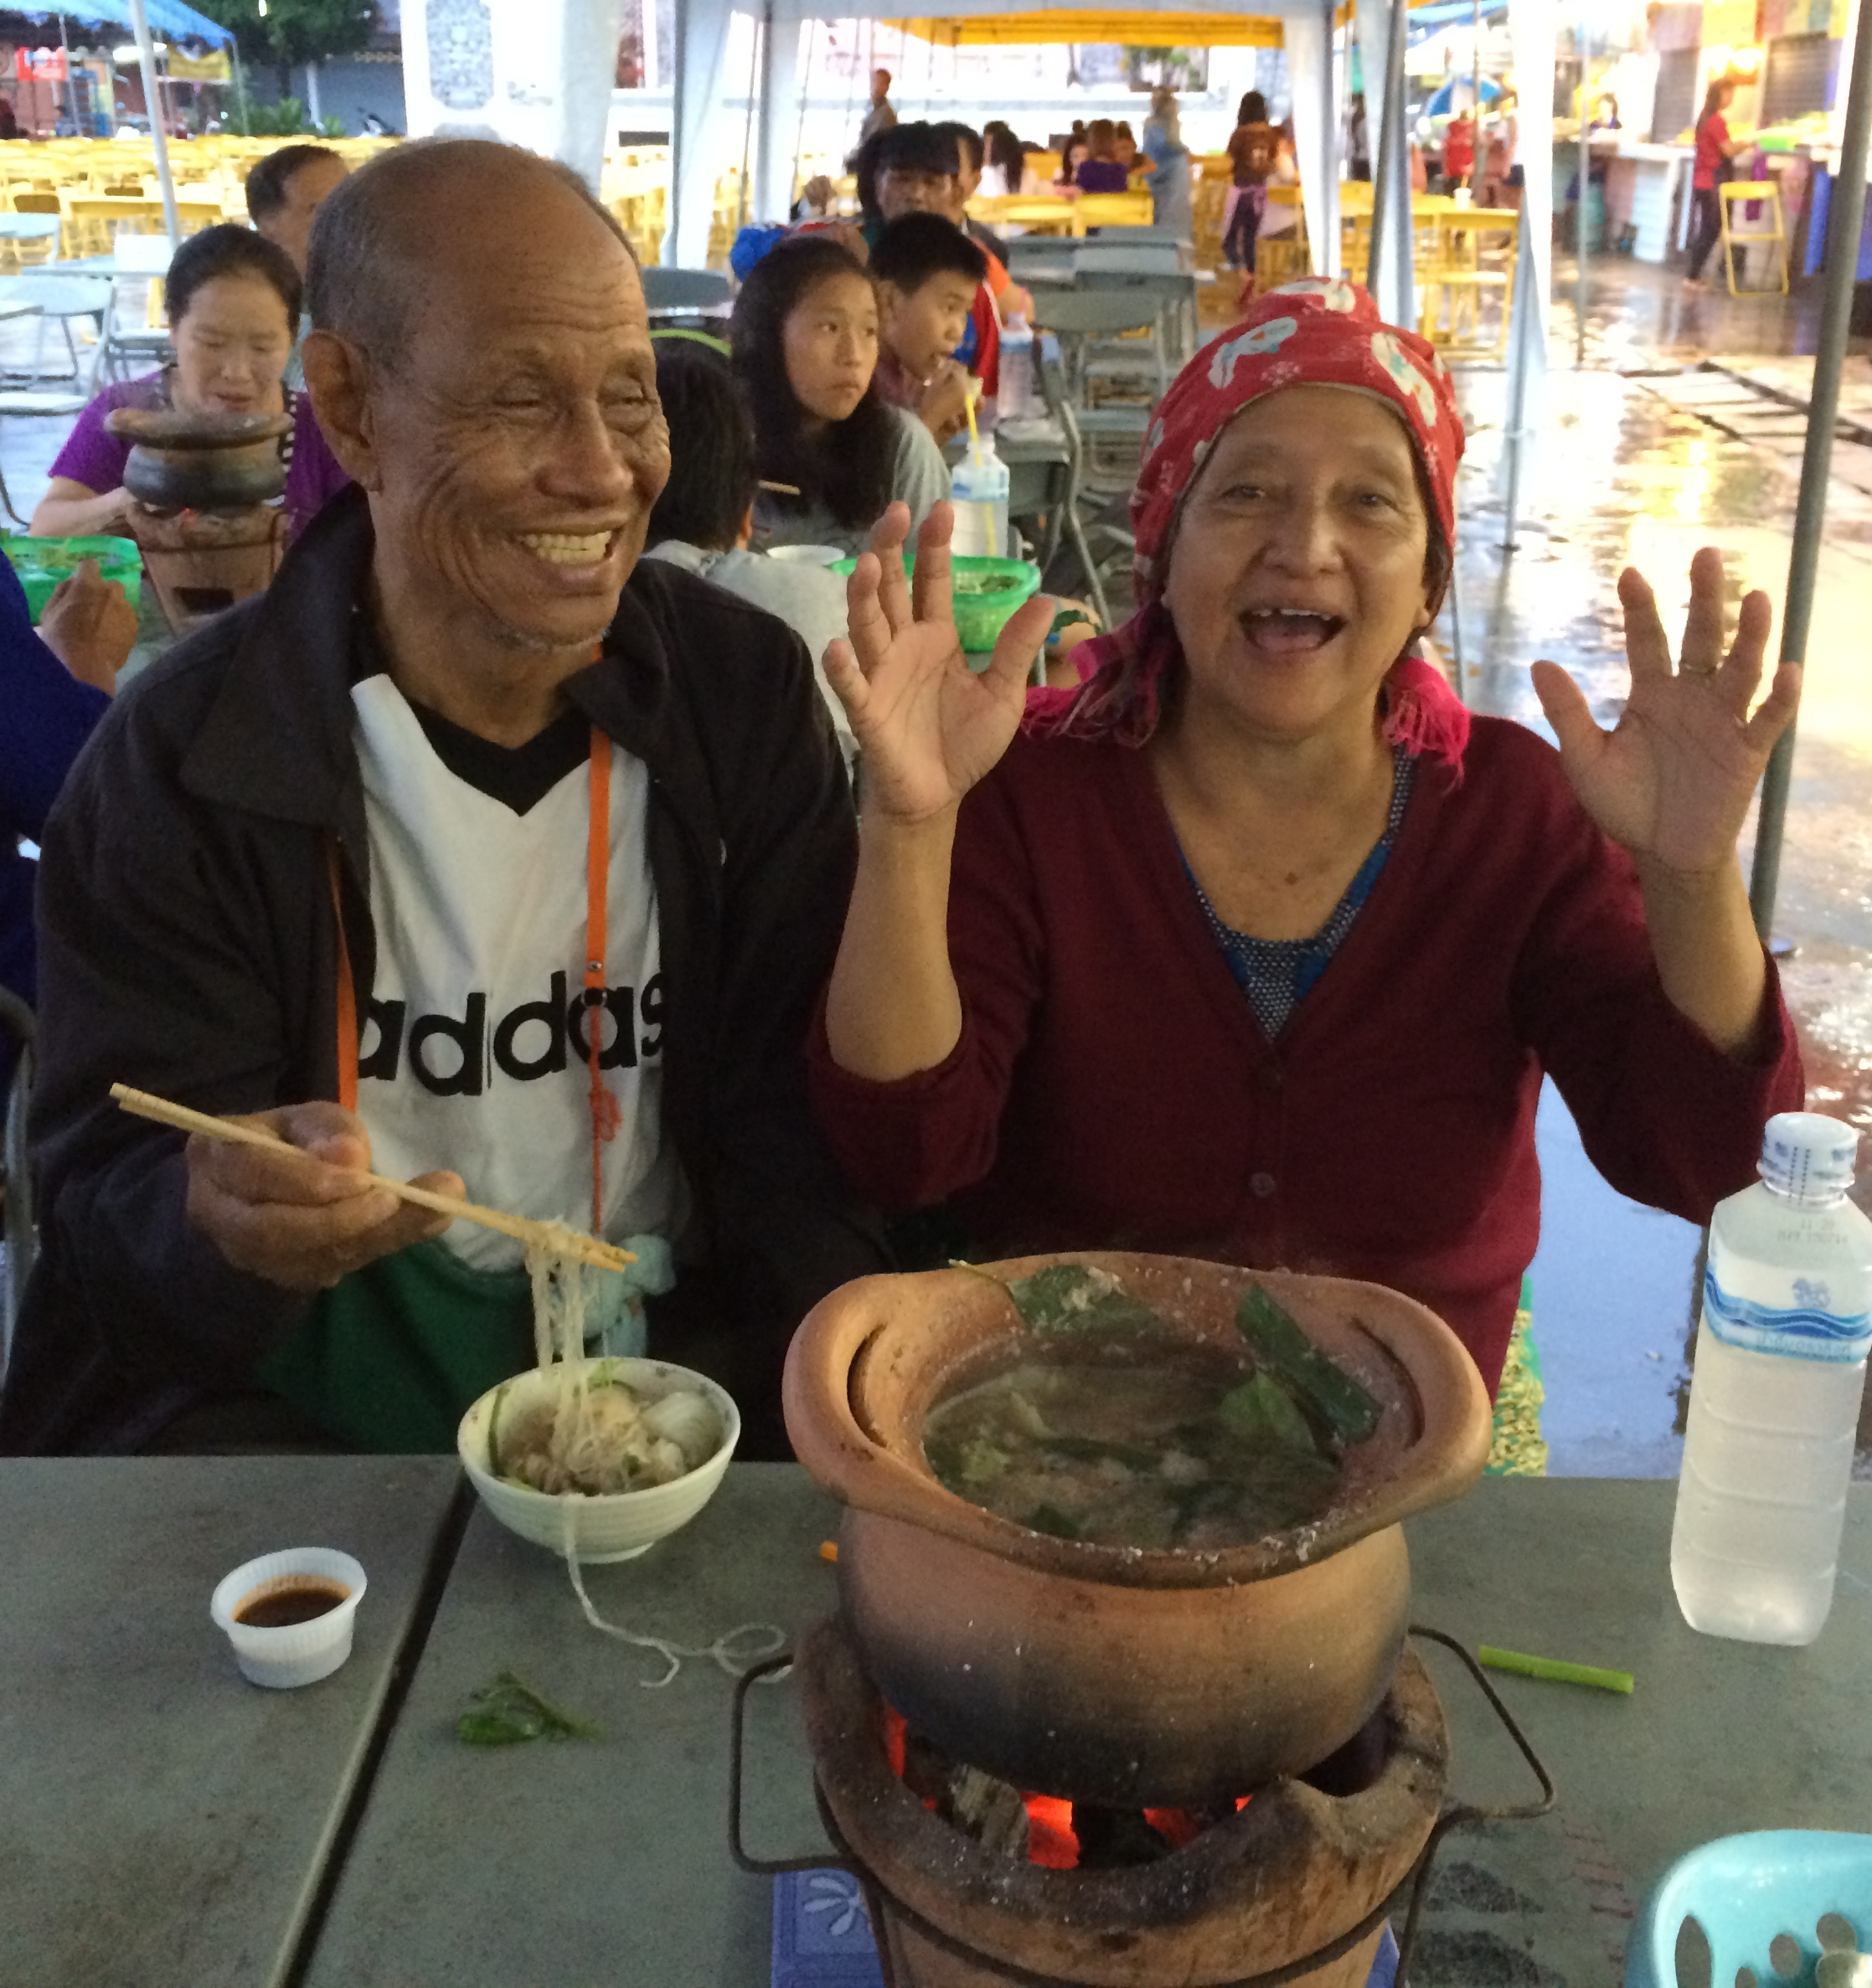 The residents enjoyed this new 'hot pot' experience. Love them!